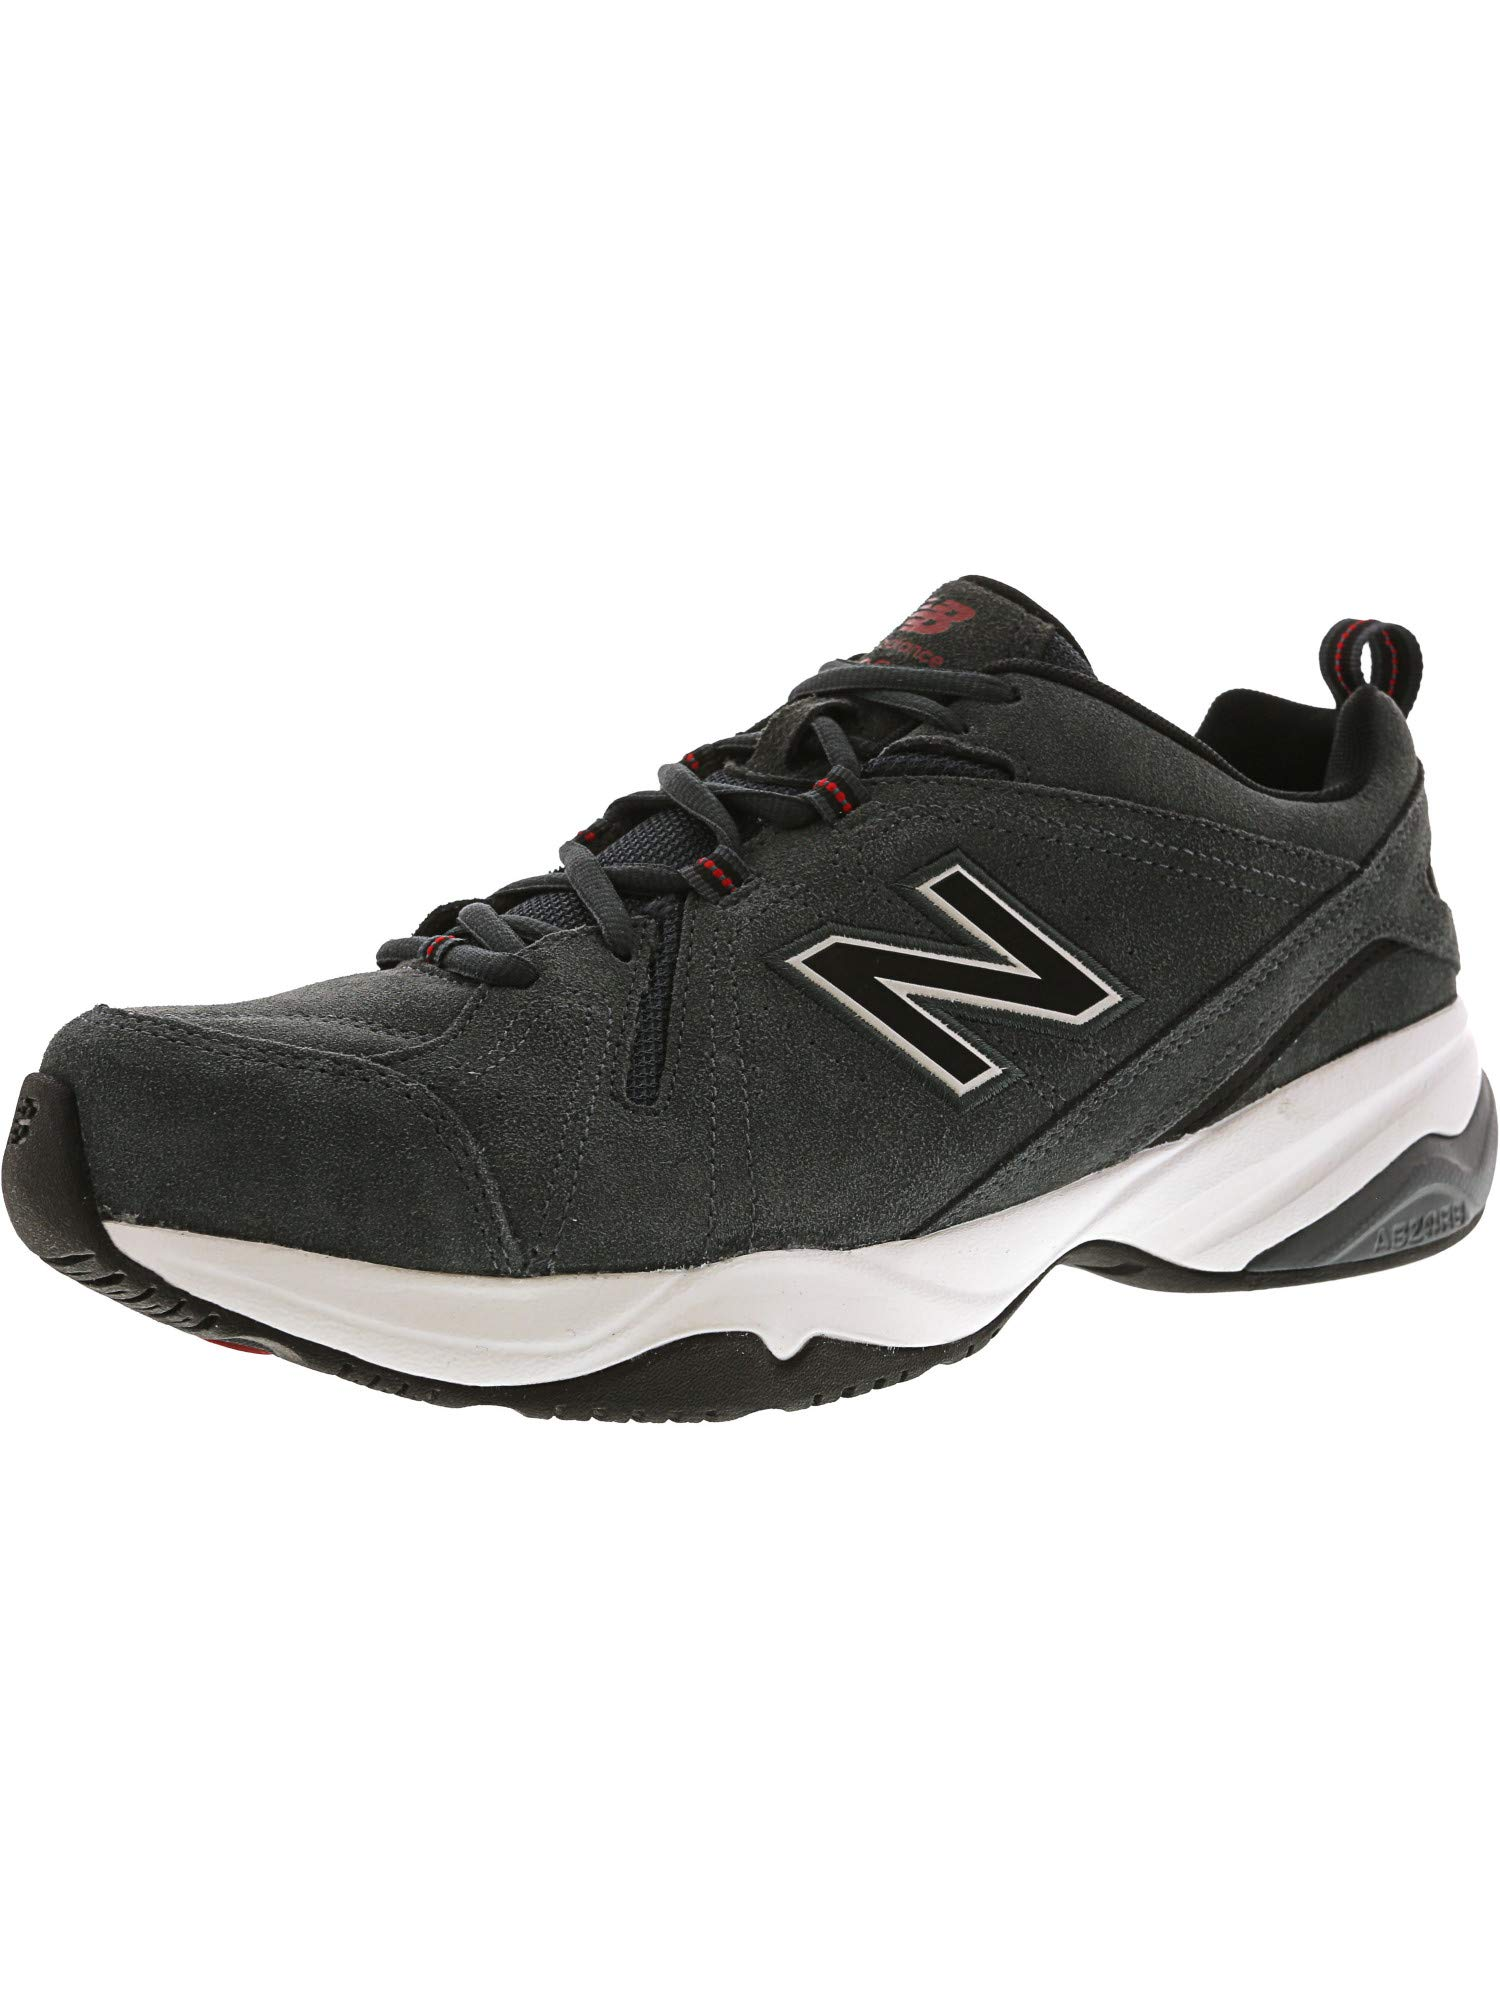 New Balance Men's MX608v4 Training Shoe, Dark Grey, 7 4E US by New Balance (Image #1)